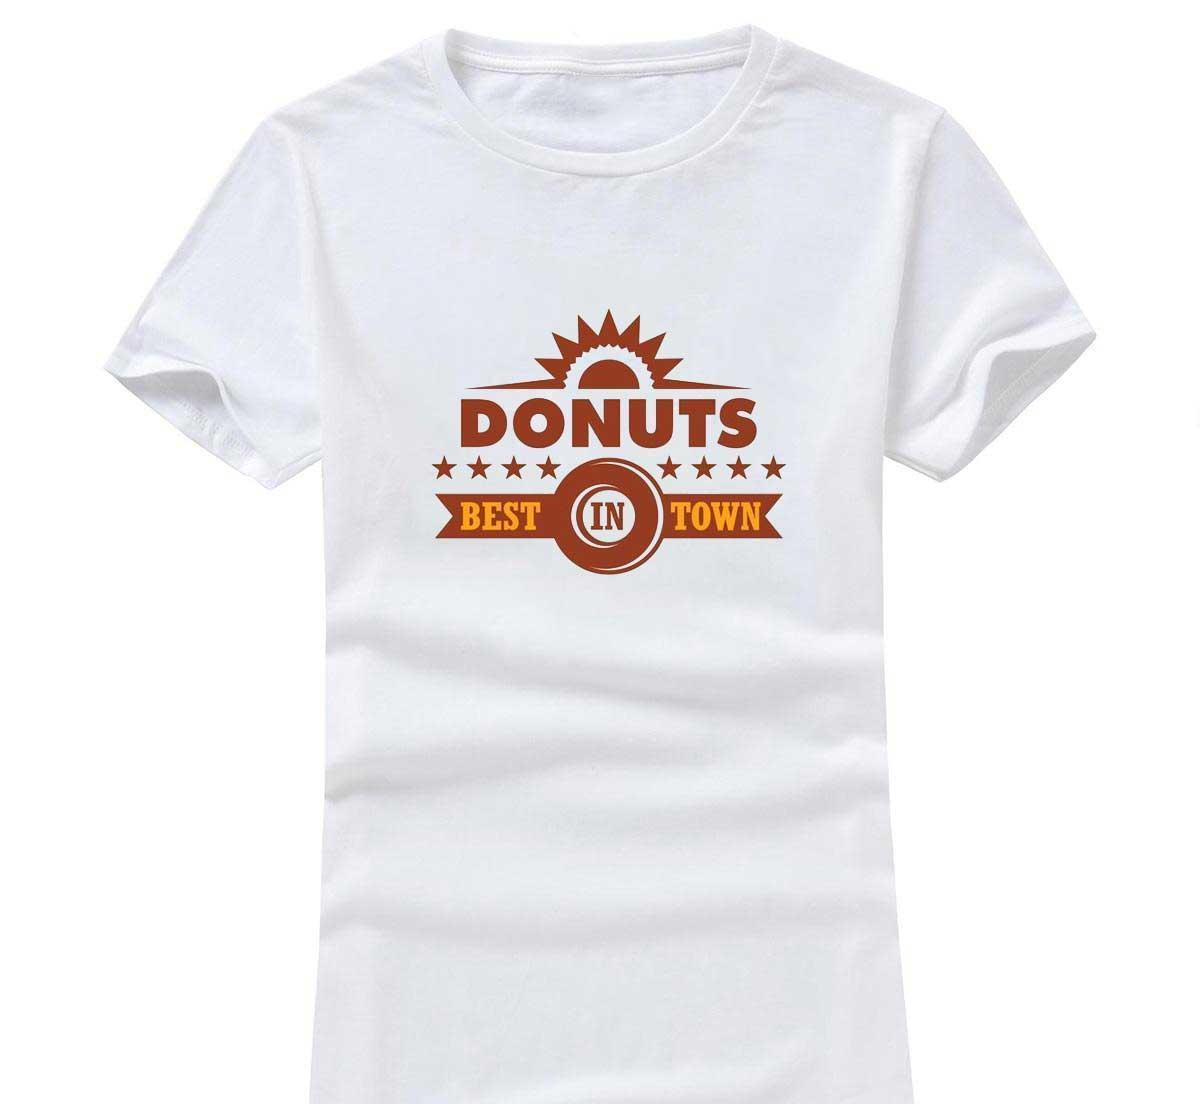 Donuts Pattern 2017 New Fashion Women/Men Cotton O Neck Short Sleeve Print Casual T-Shirts loose Personalized unique Tees Wholesale